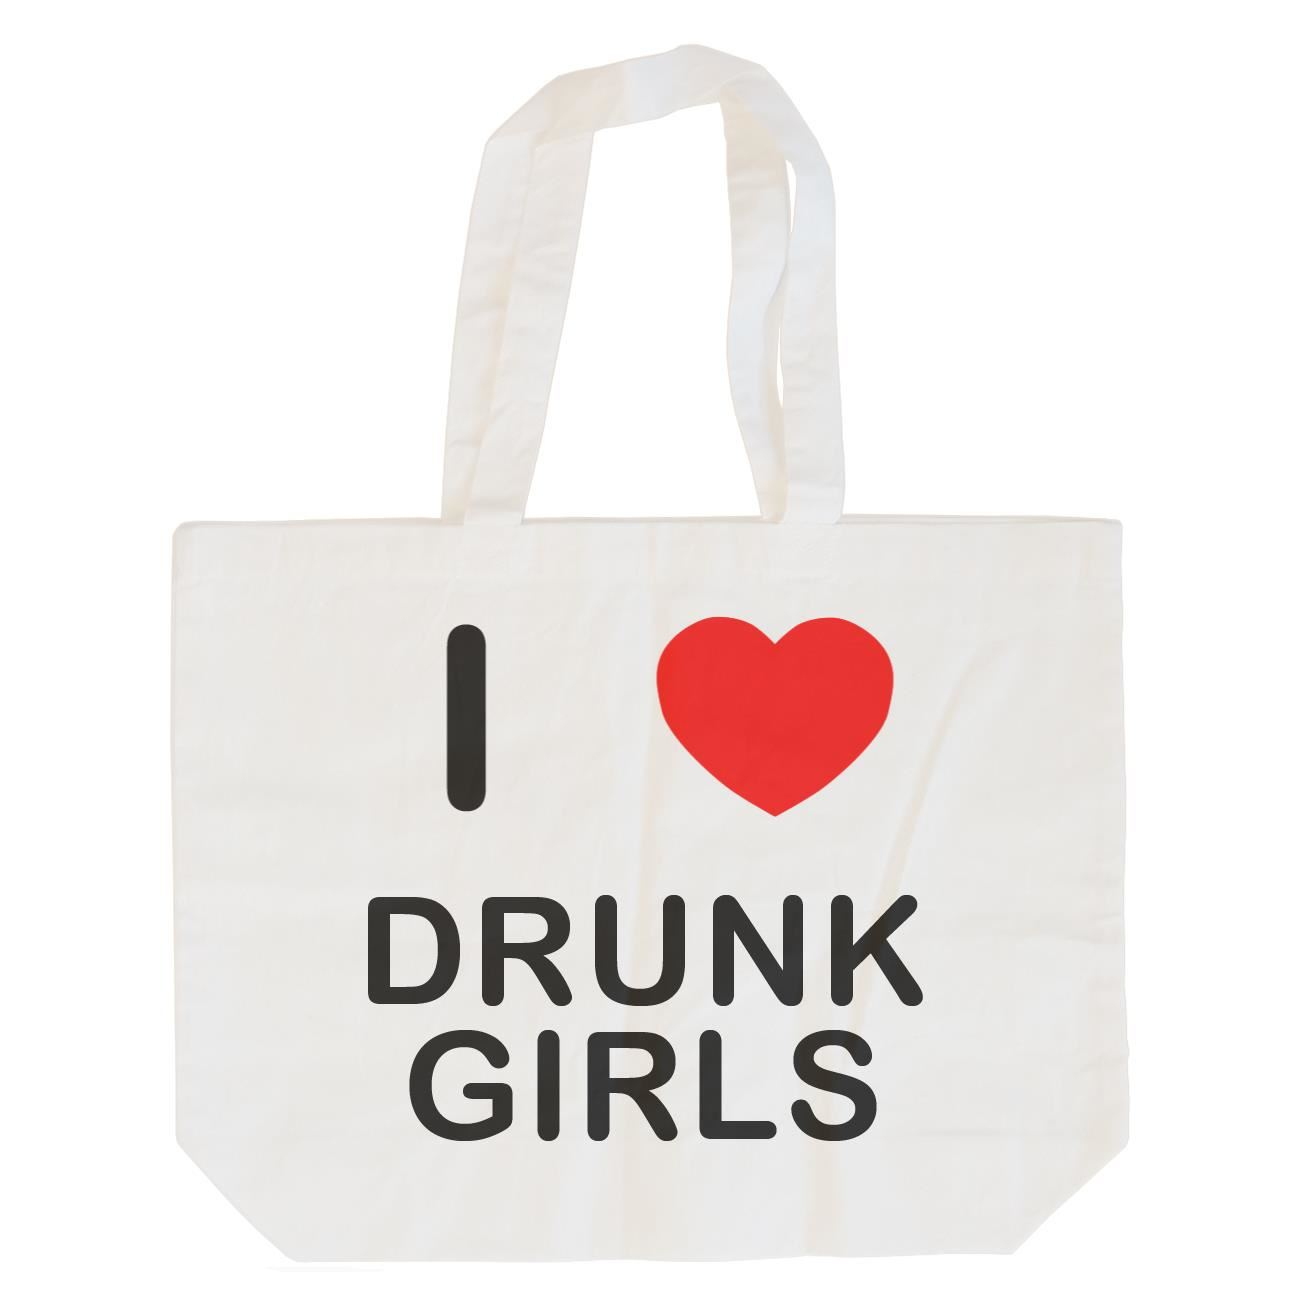 I Love Drunk Girls - Cotton Bag | Size choice Tote, Shopper or Sling